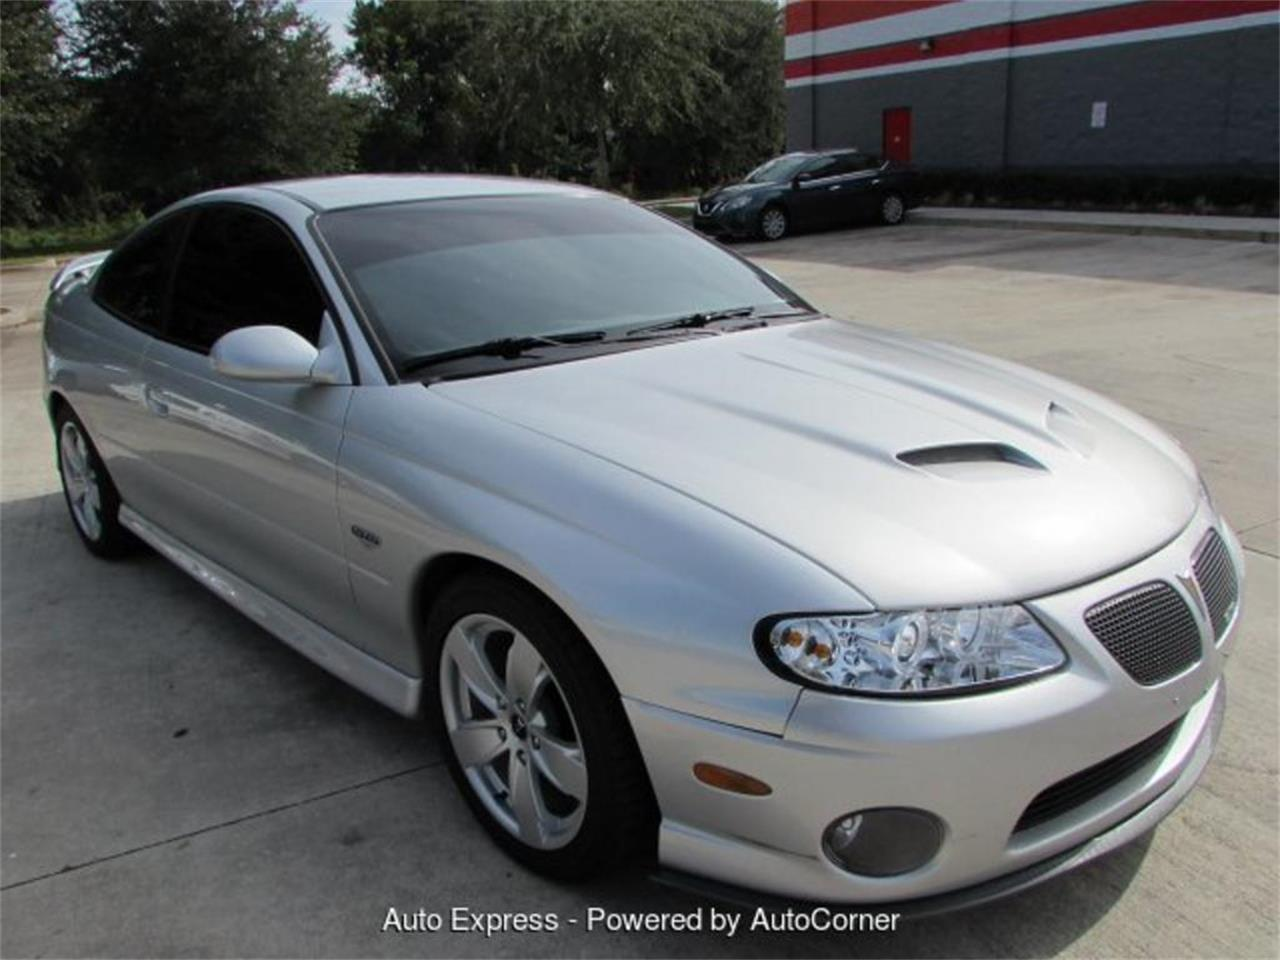 Large Picture of '05 GTO - $13,999.00 - Q2A5